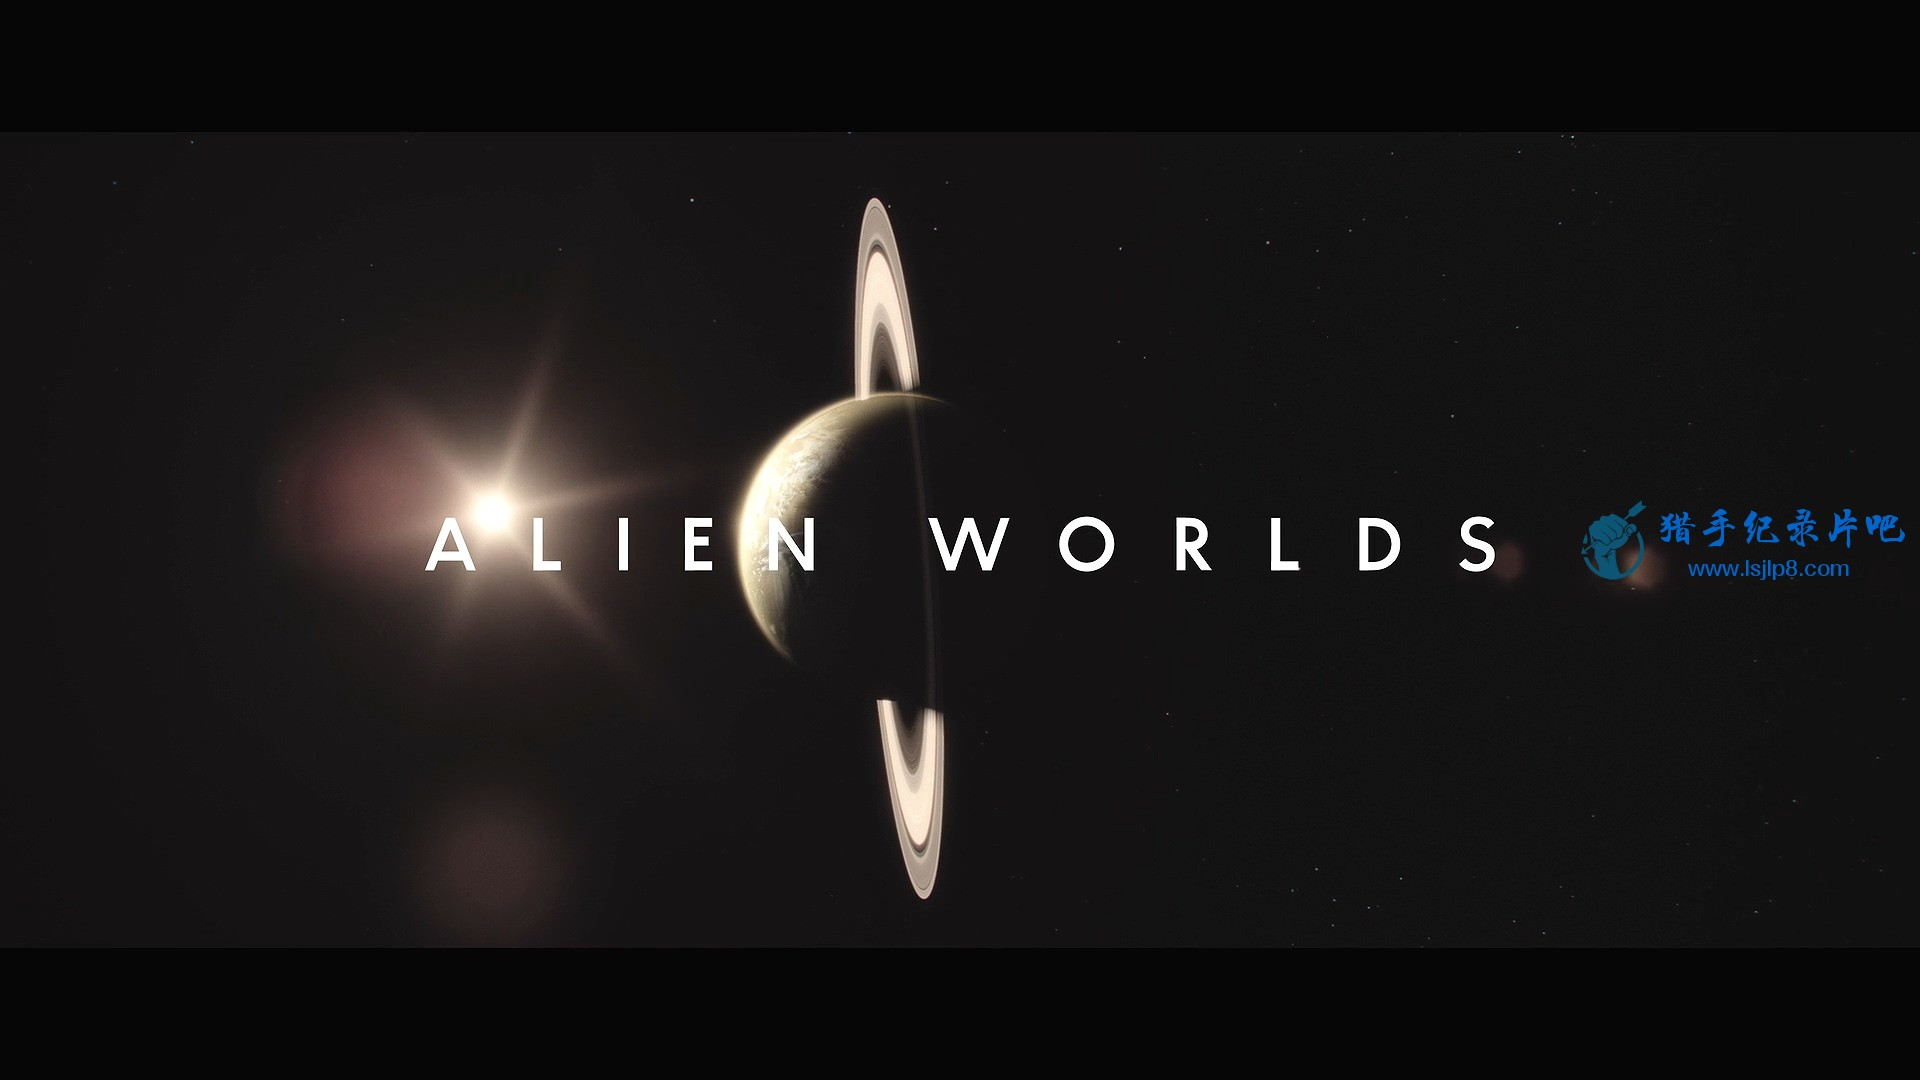 Alien.Worlds.S01E01.Atlas.1080p.NF.WEB-DL.DDP5.1.x264-Telly.jpg